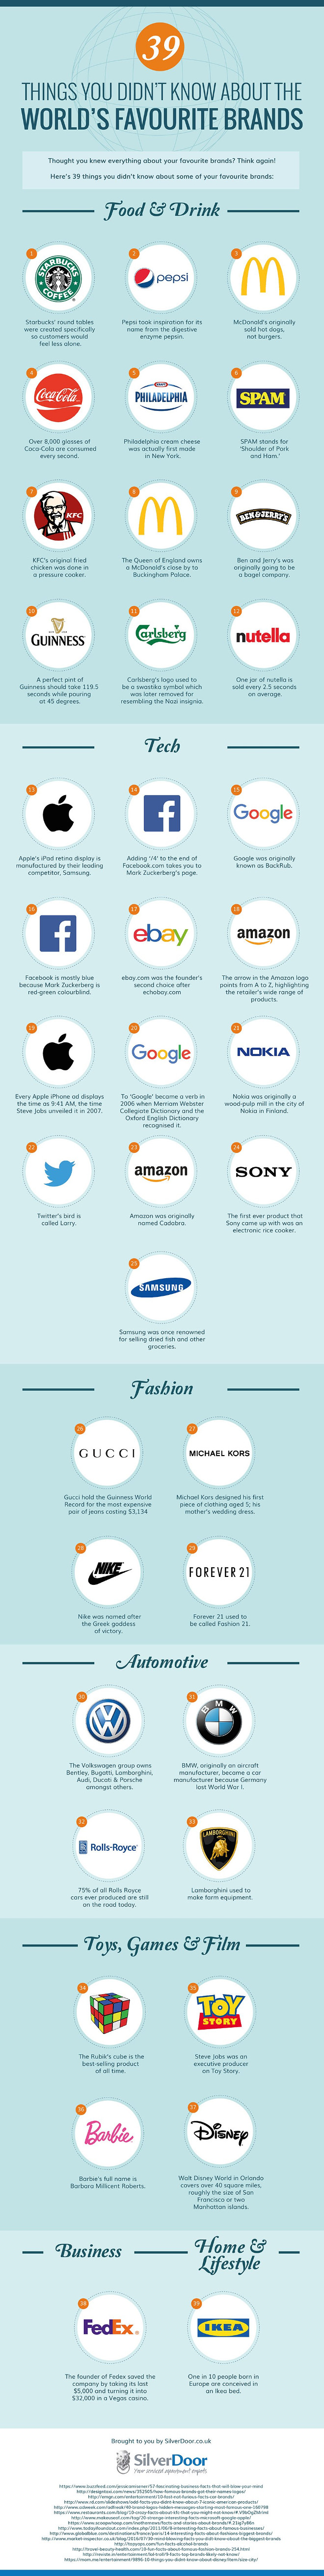 39-facts-worlds-favourite-brands